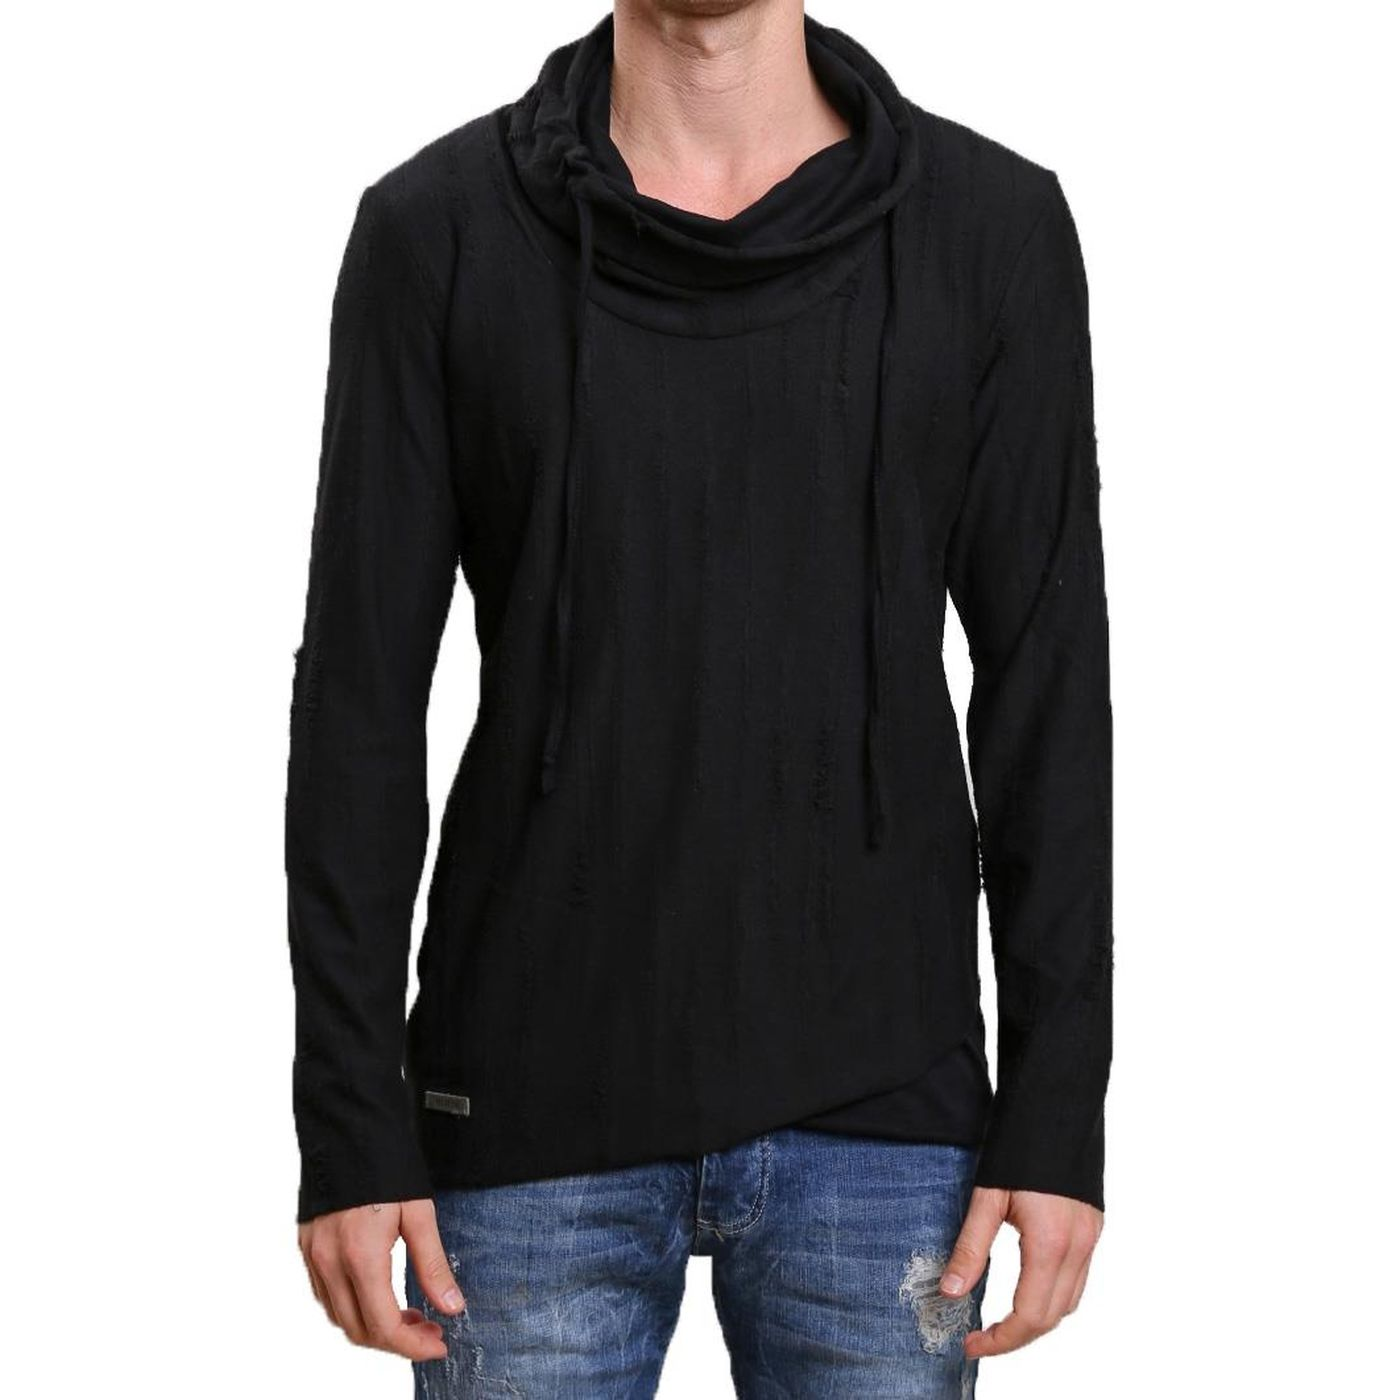 red bridge herren shawl wrap pullover m2094 black 22 99. Black Bedroom Furniture Sets. Home Design Ideas